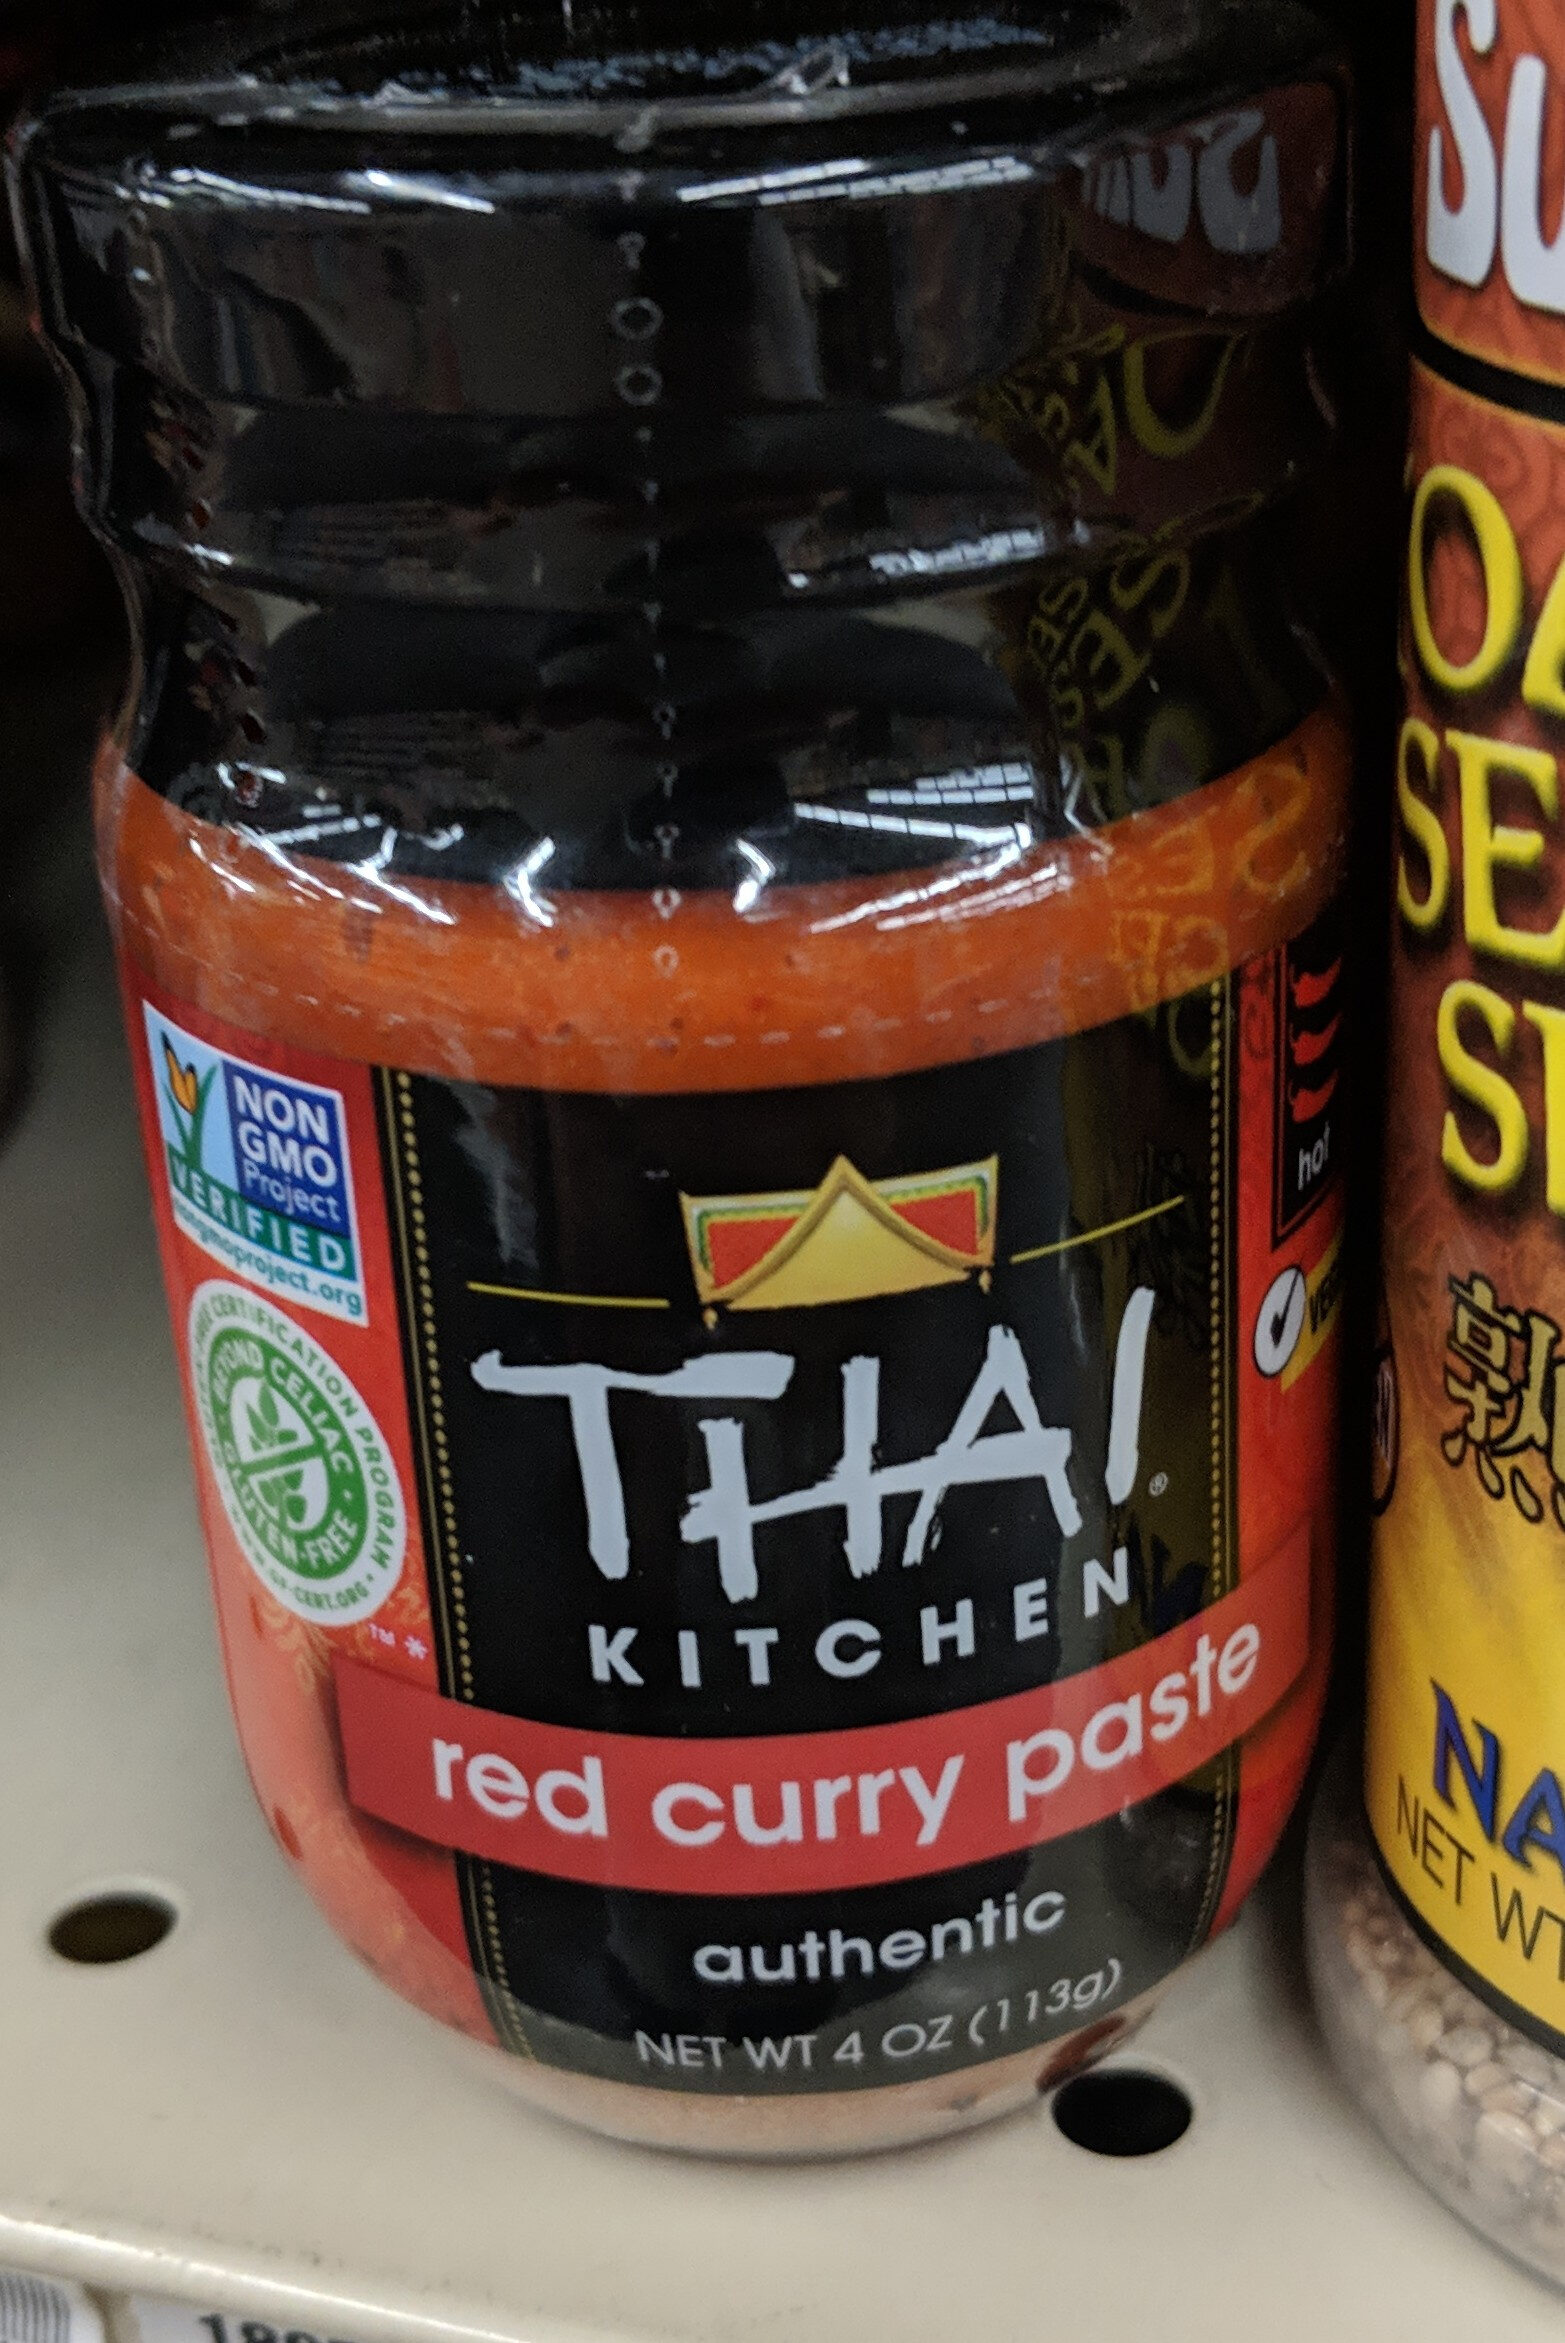 Hot red curry paste - Product - en